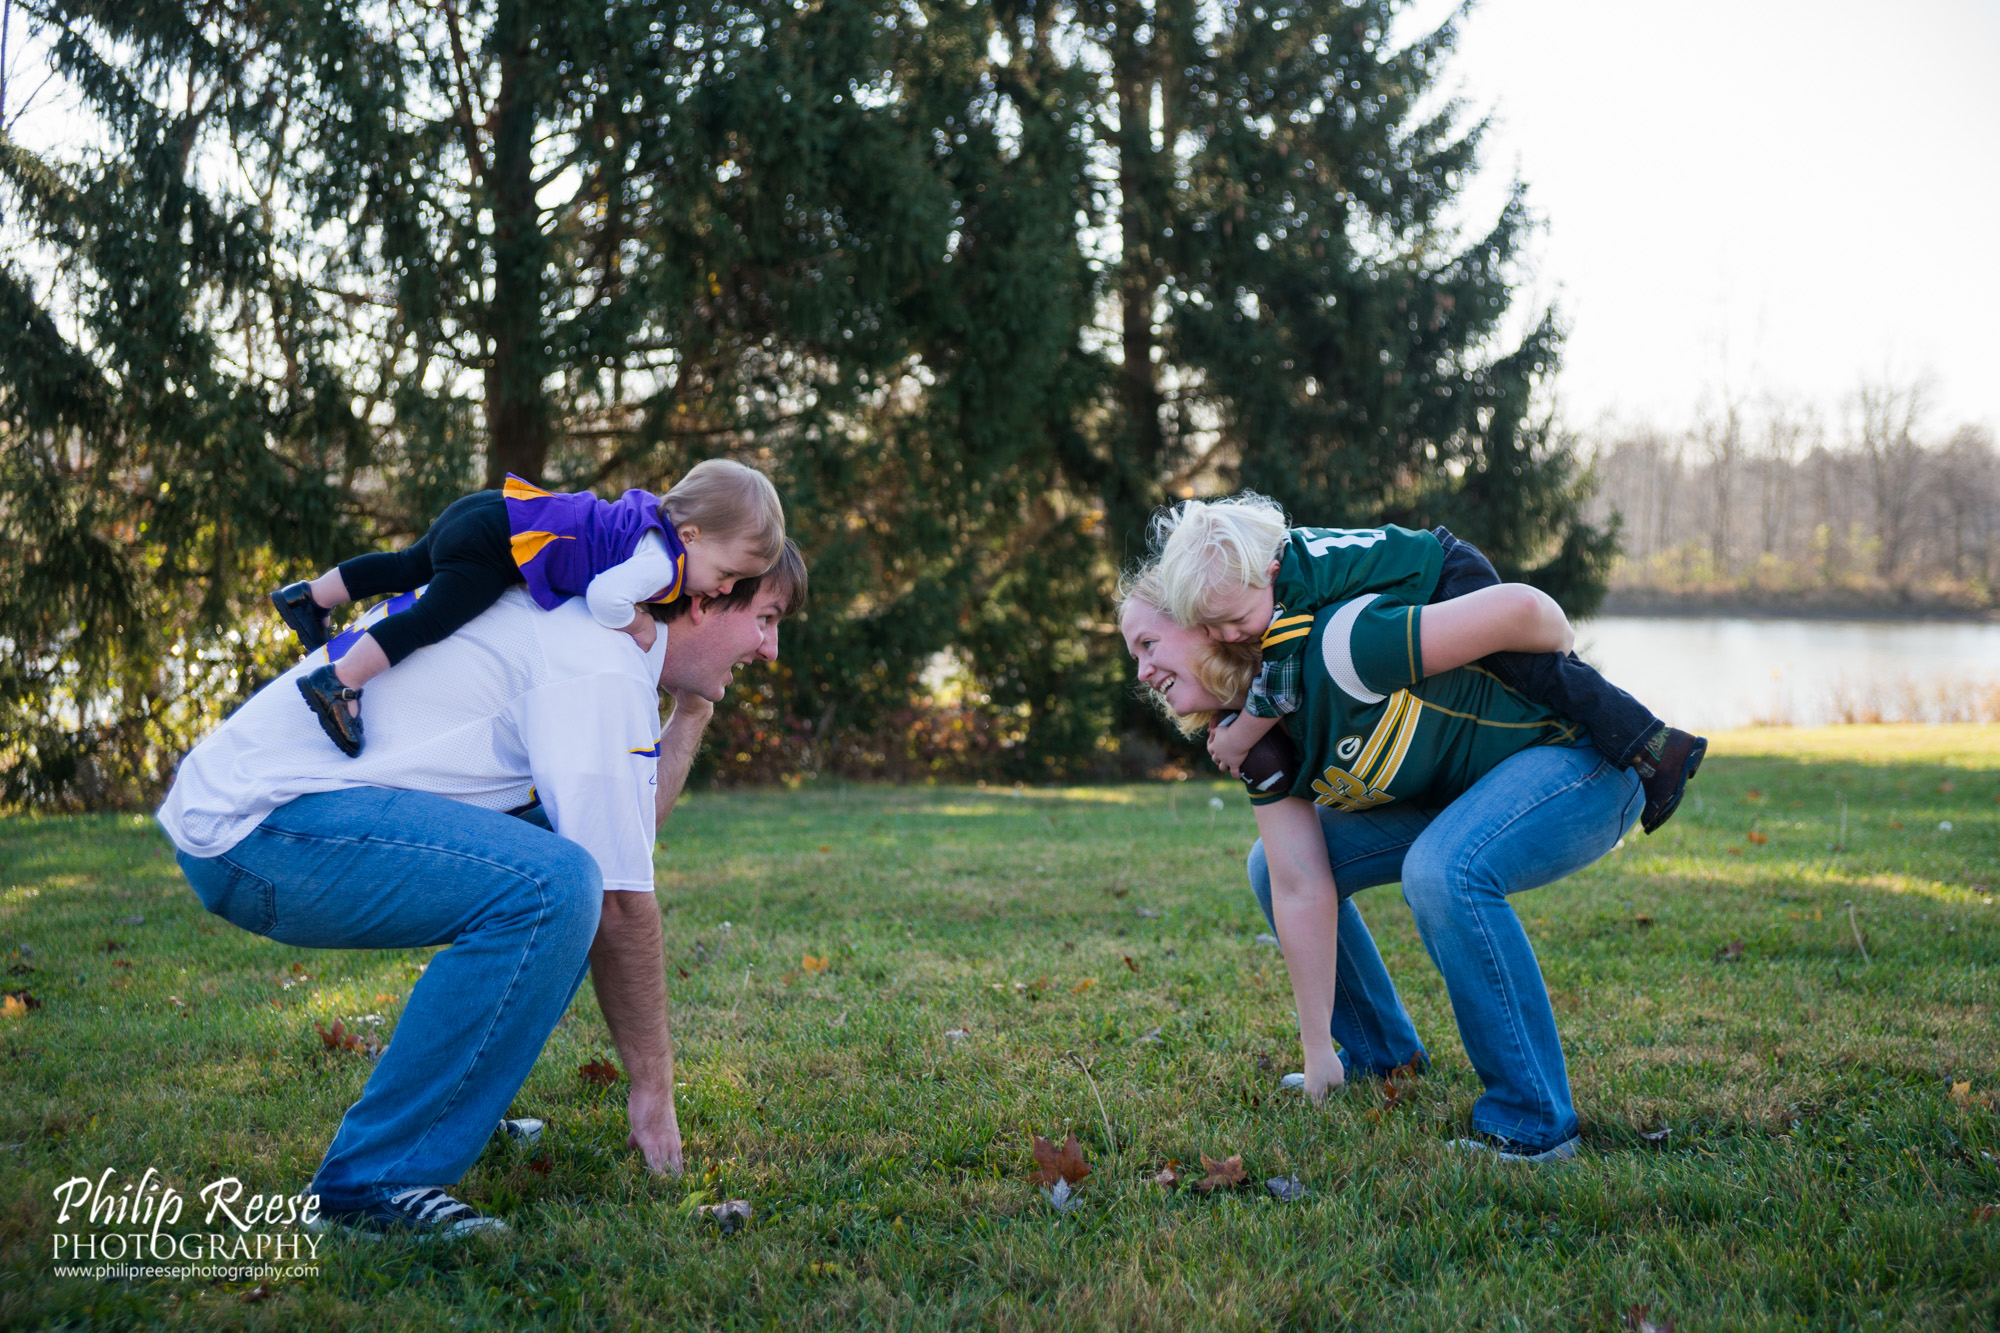 philip reese photography, packers, vikings, NFL, family session, indiana photographer